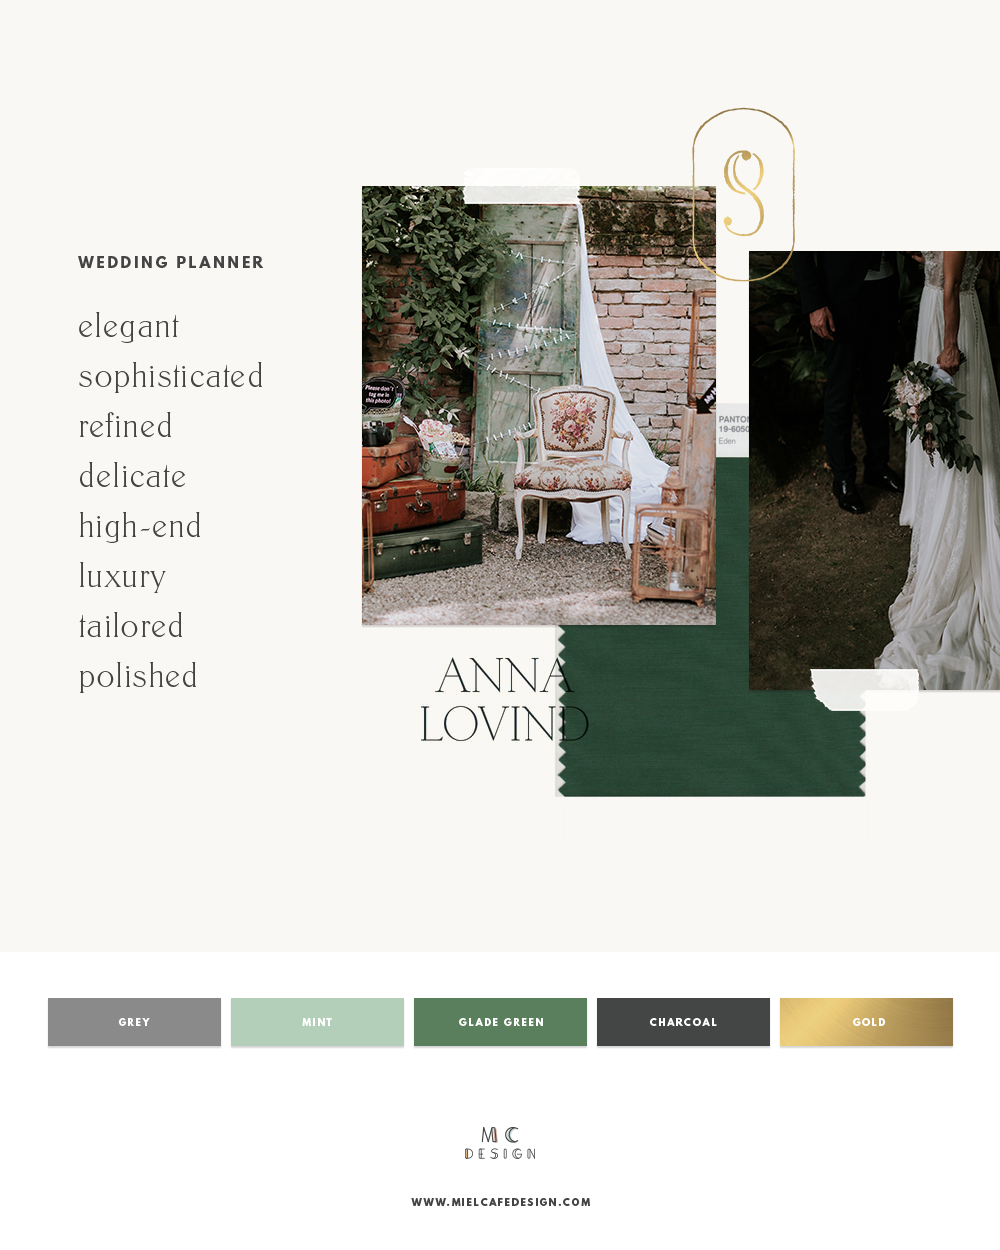 How to create your wedding planner brand - Visualise: elegant, refined, high-end, luxury, moody wedding planner mood board and color palette